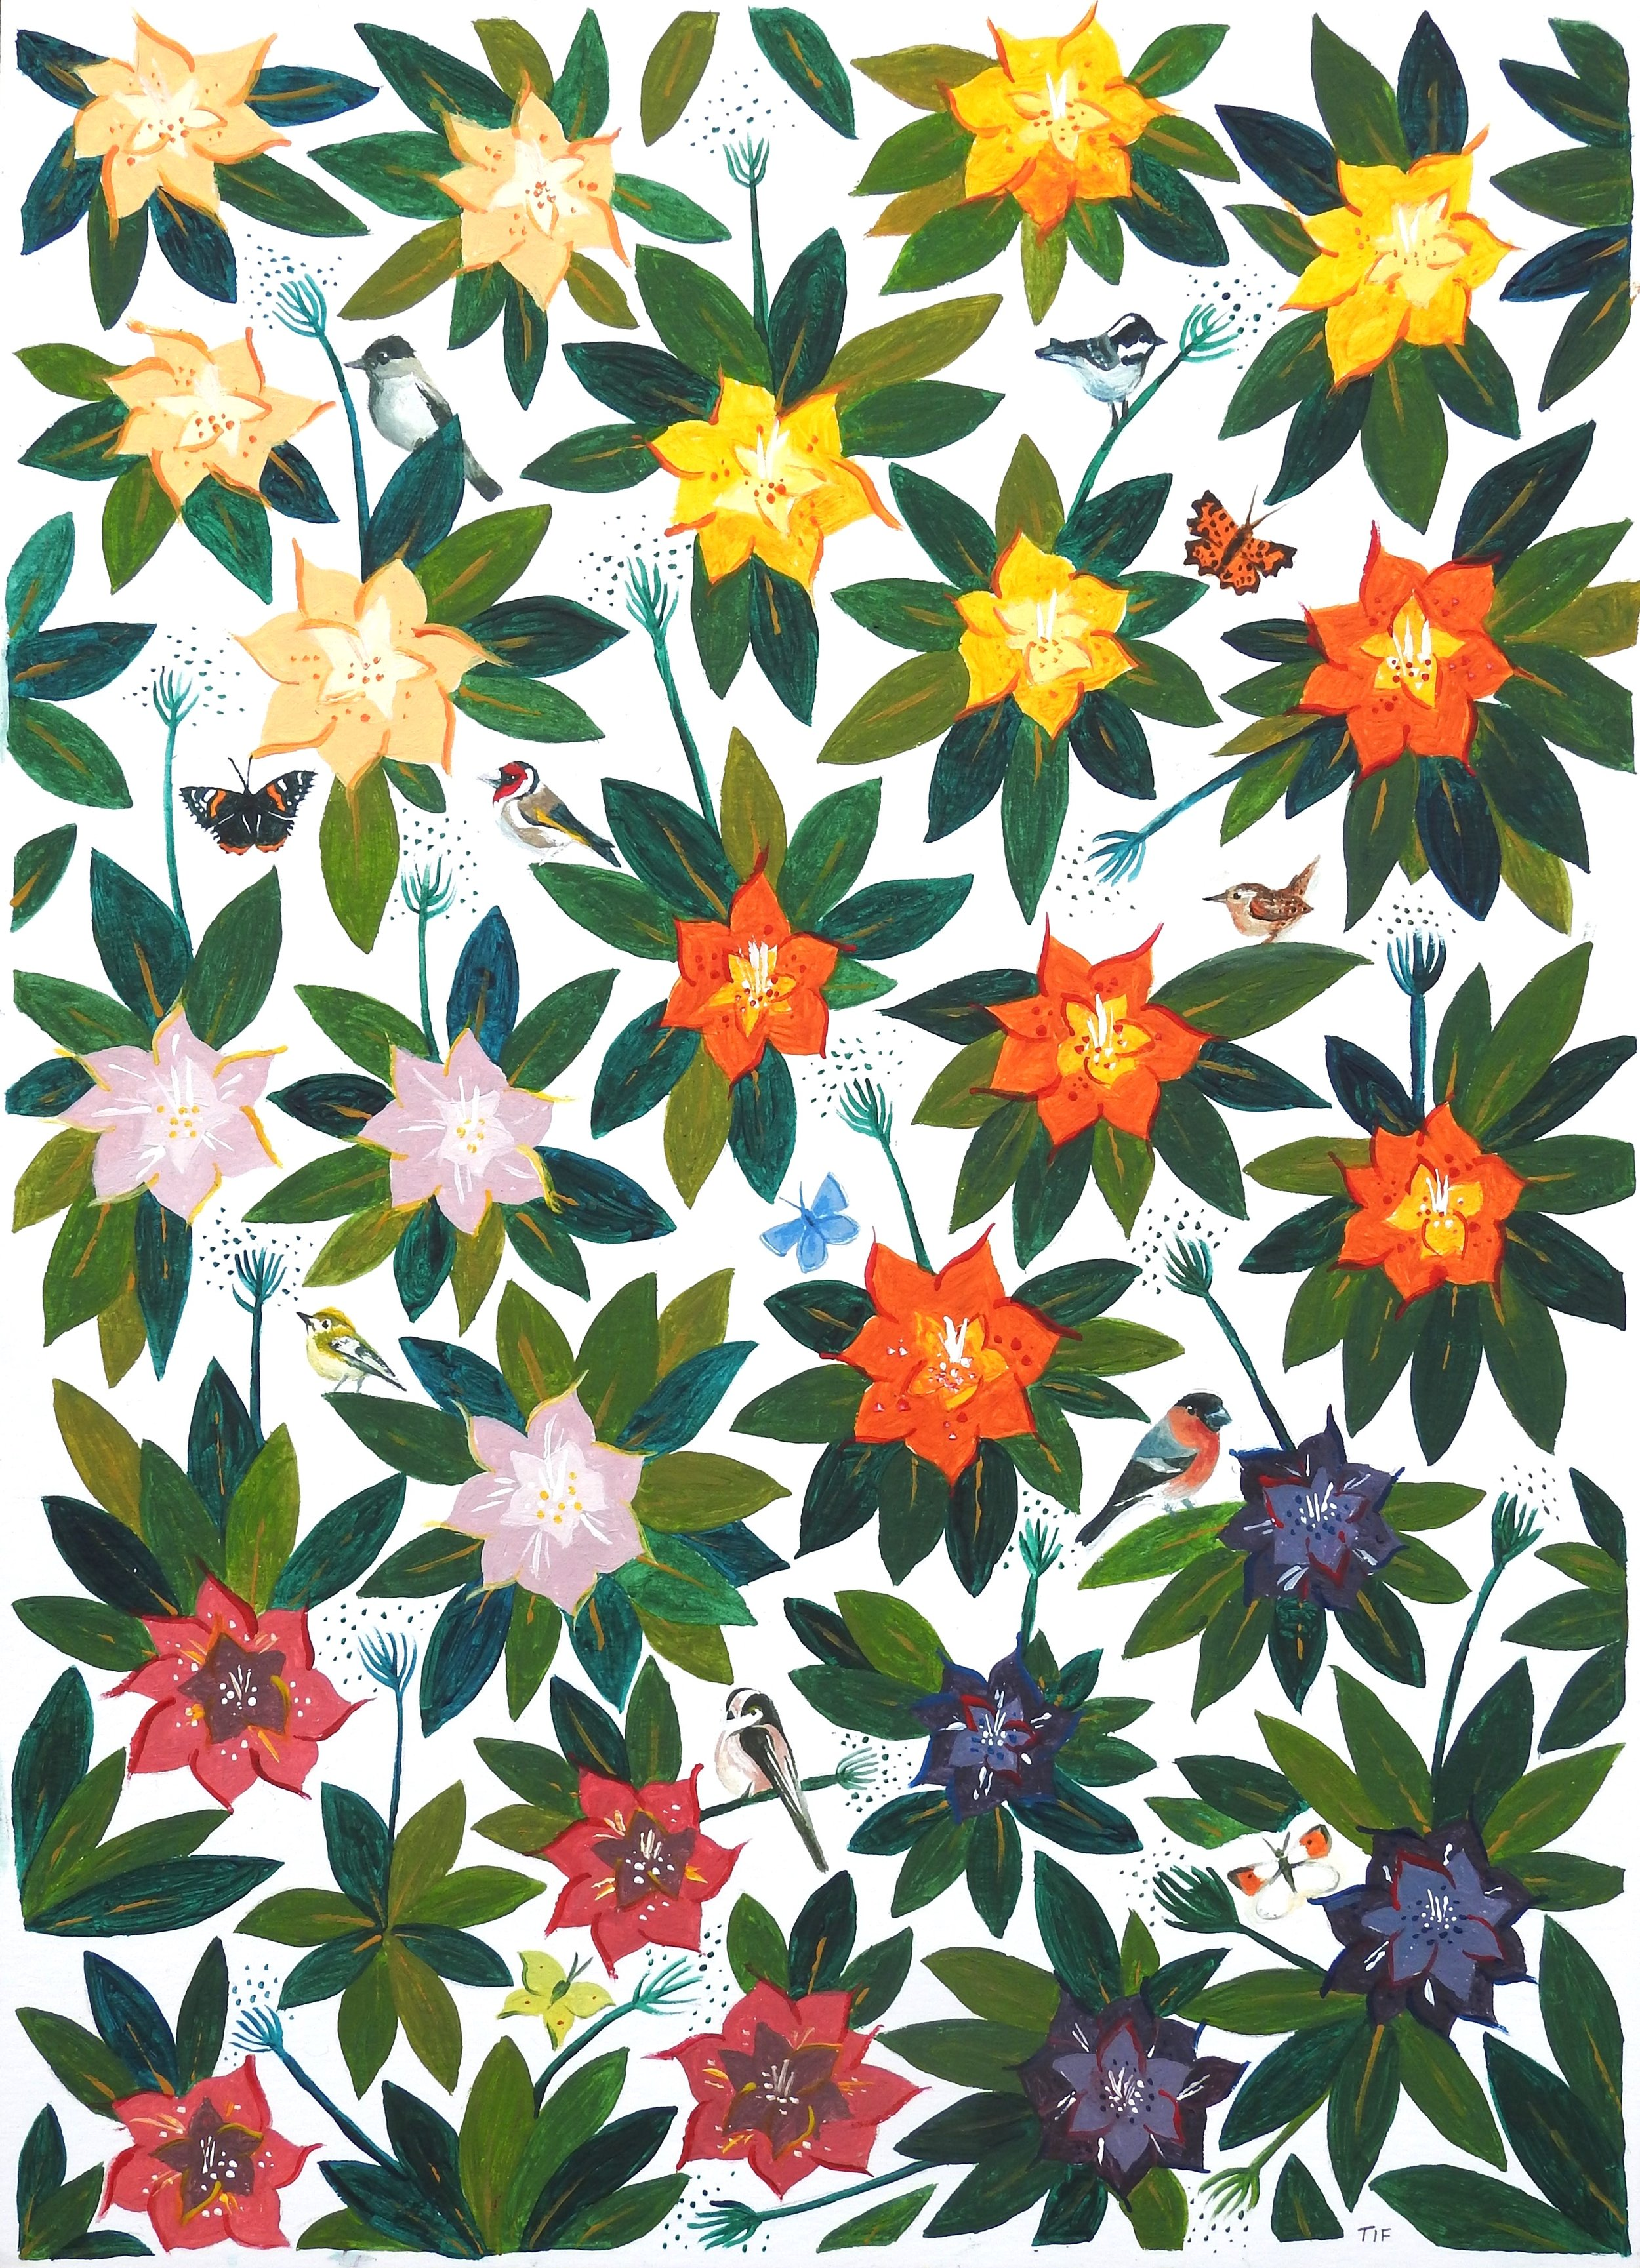 'The Westonbirt Rhododendrons' illustration inspired by my visit to Westonbirt Arboretum